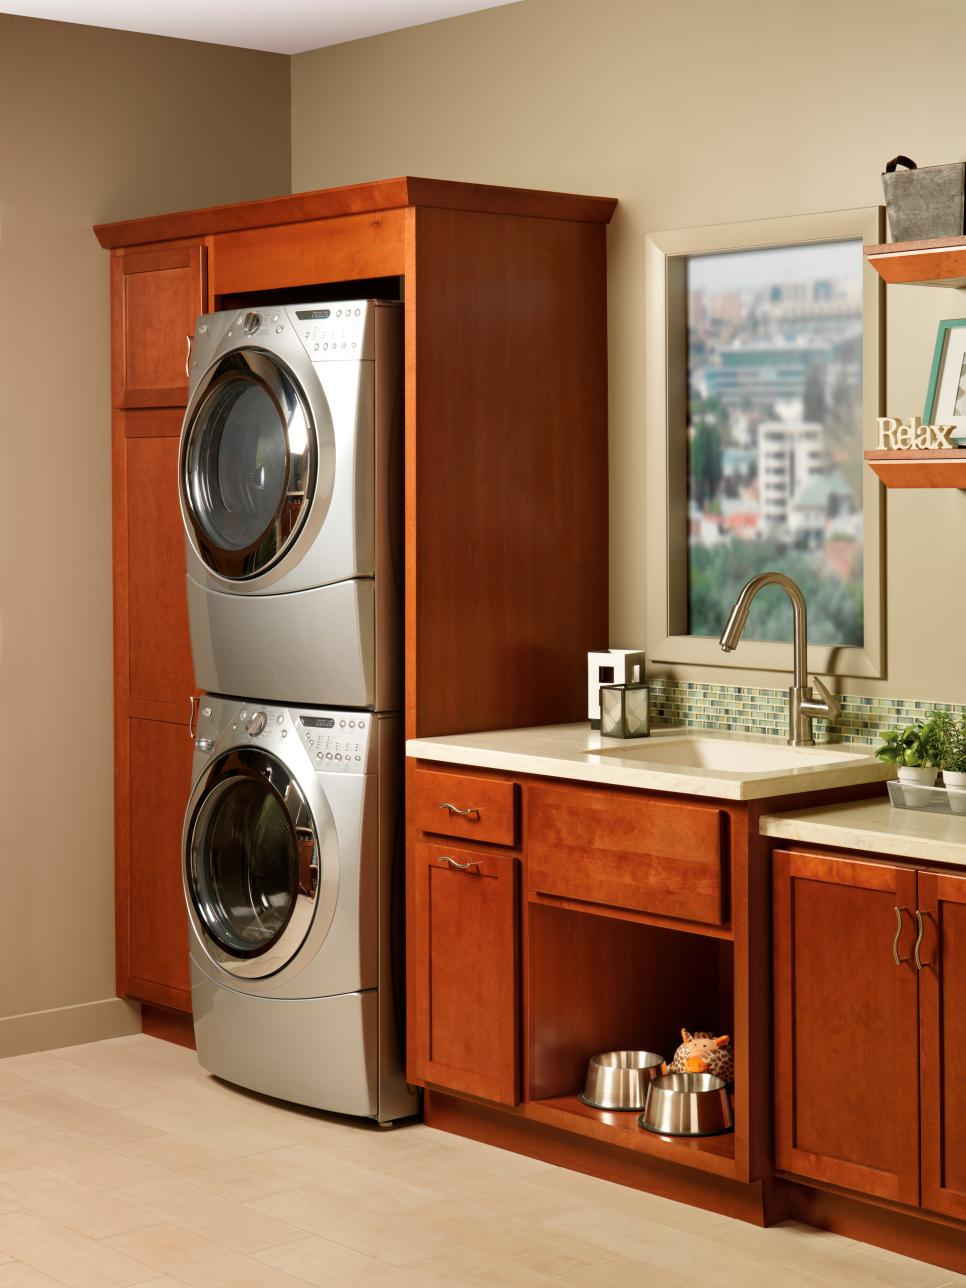 Laundry room design ideas hgtv Laundry room blueprints